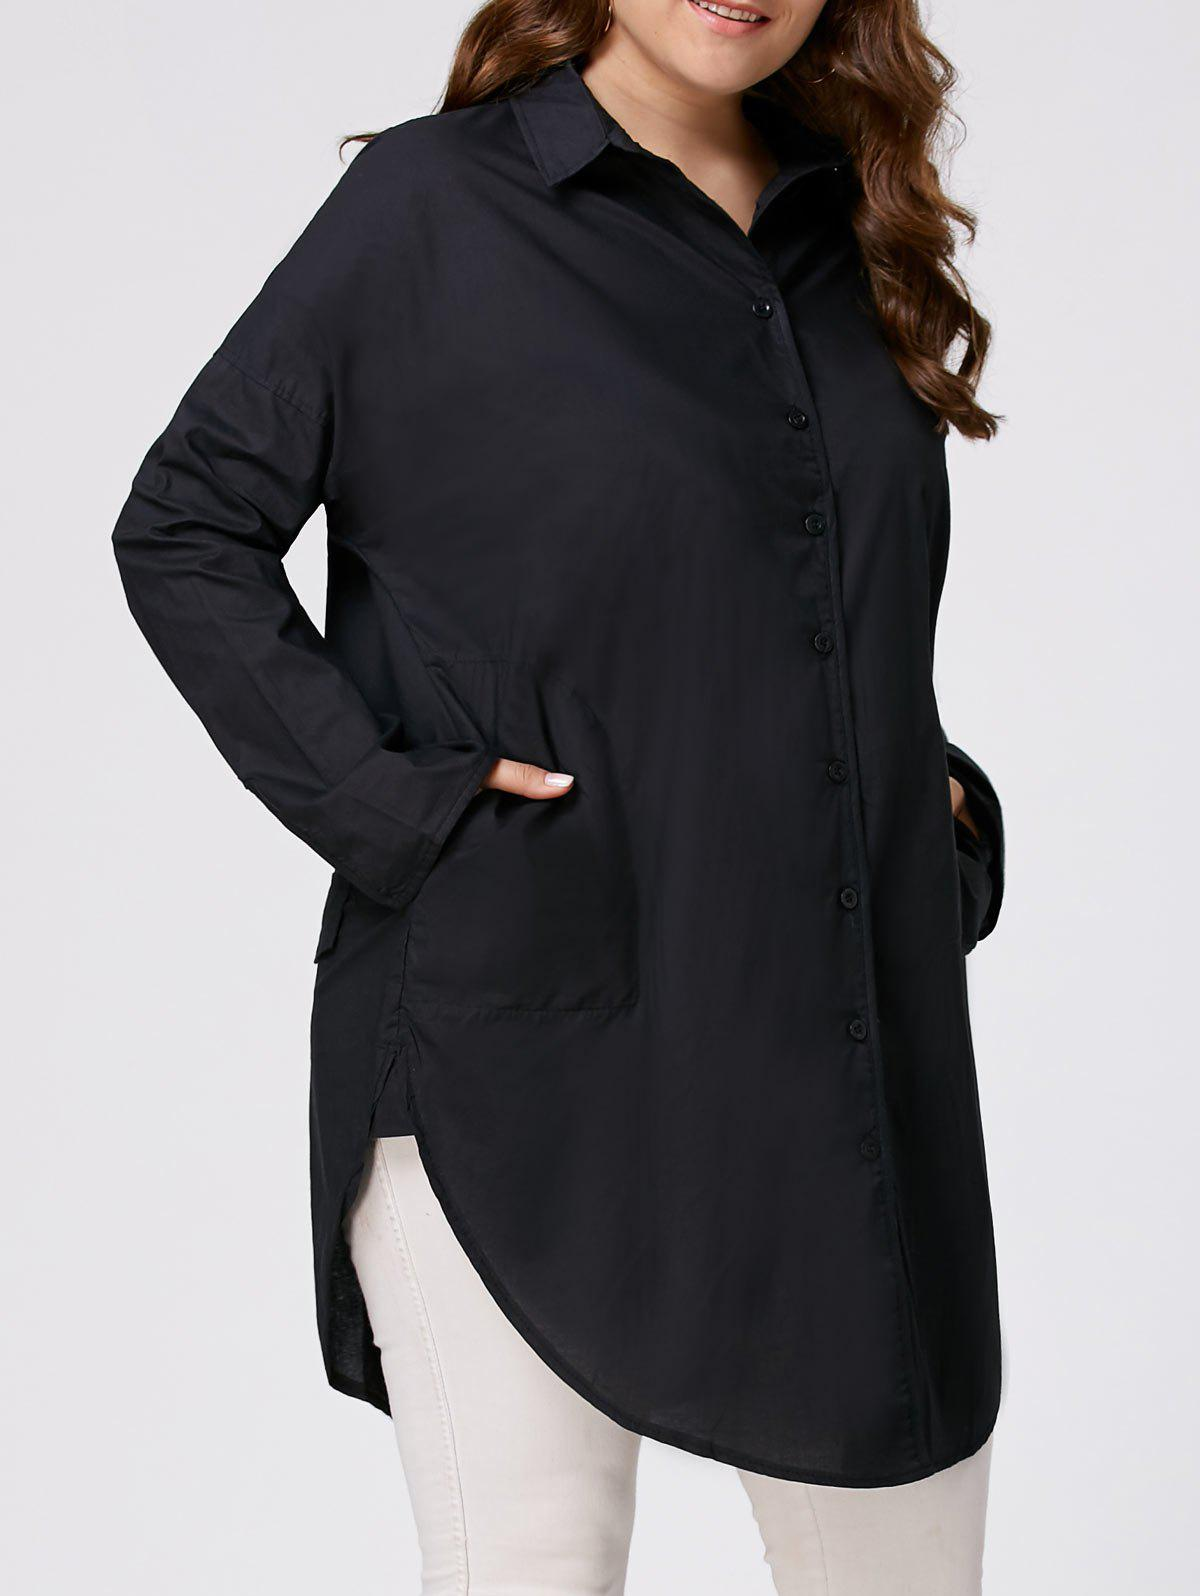 Plus Size Side Split Long Sleeve ShirtWOMEN<br><br>Size: 3XL; Color: BLACK; Material: Cotton Blends,Polyester; Shirt Length: Long; Sleeve Length: Full; Collar: Shirt Collar; Style: Fashion; Season: Fall,Spring; Embellishment: Button; Pattern Type: Solid; Weight: 0.2800kg; Package Contents: 1 x Shirt;